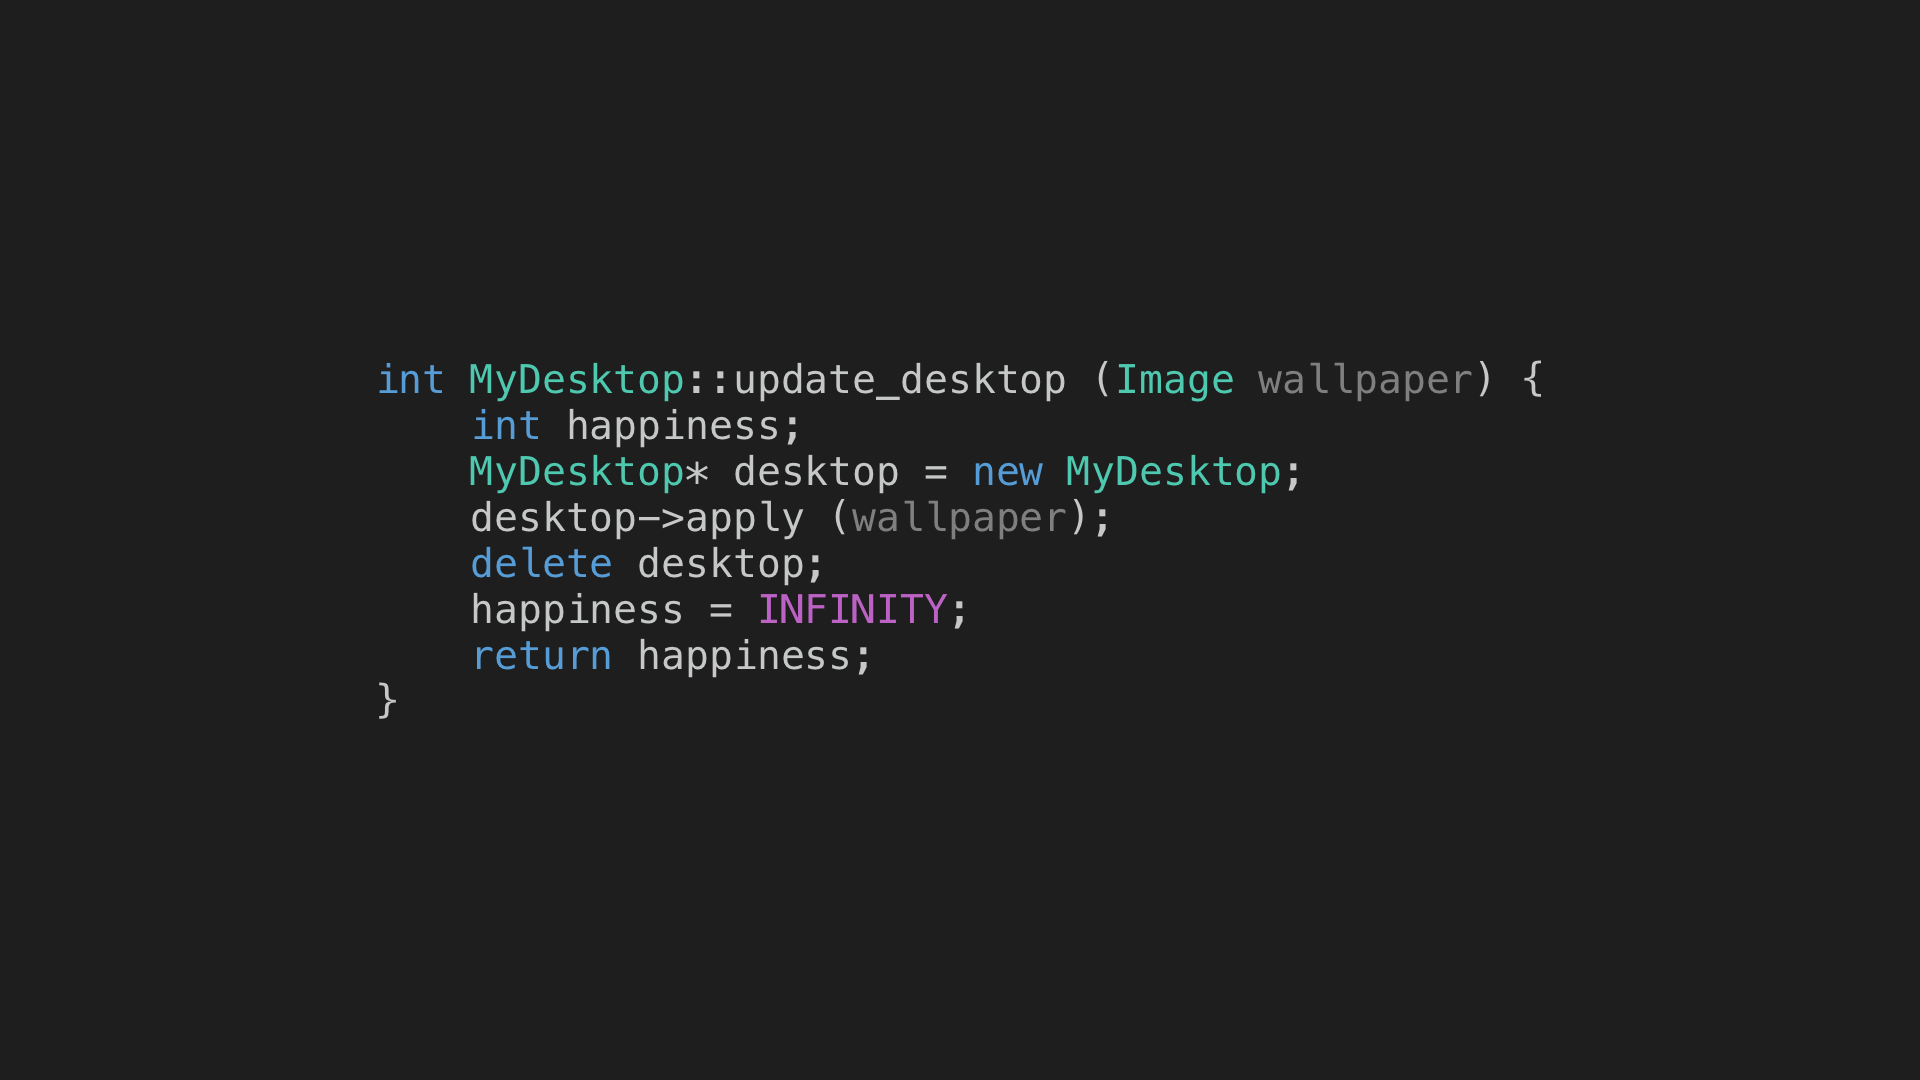 37 Programmer Code Wallpaper Backgrounds Free Download in addition 28253 further Infinite Loops also 45 Hi Tech Wallpapers For Desktop And Laptops further Small Basic. on hello world python